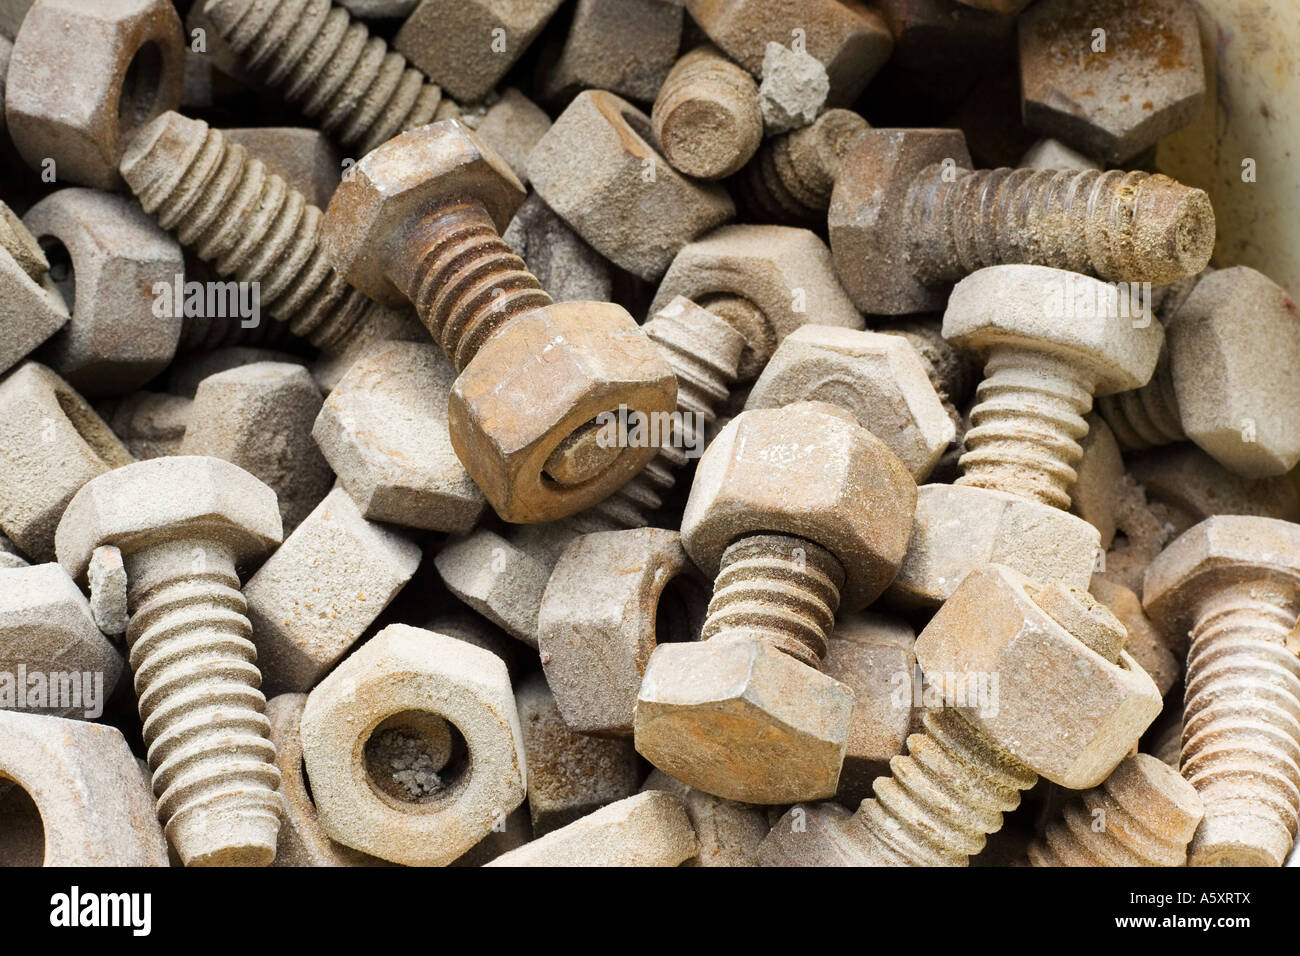 bucket of nuts and bolts - Stock Image